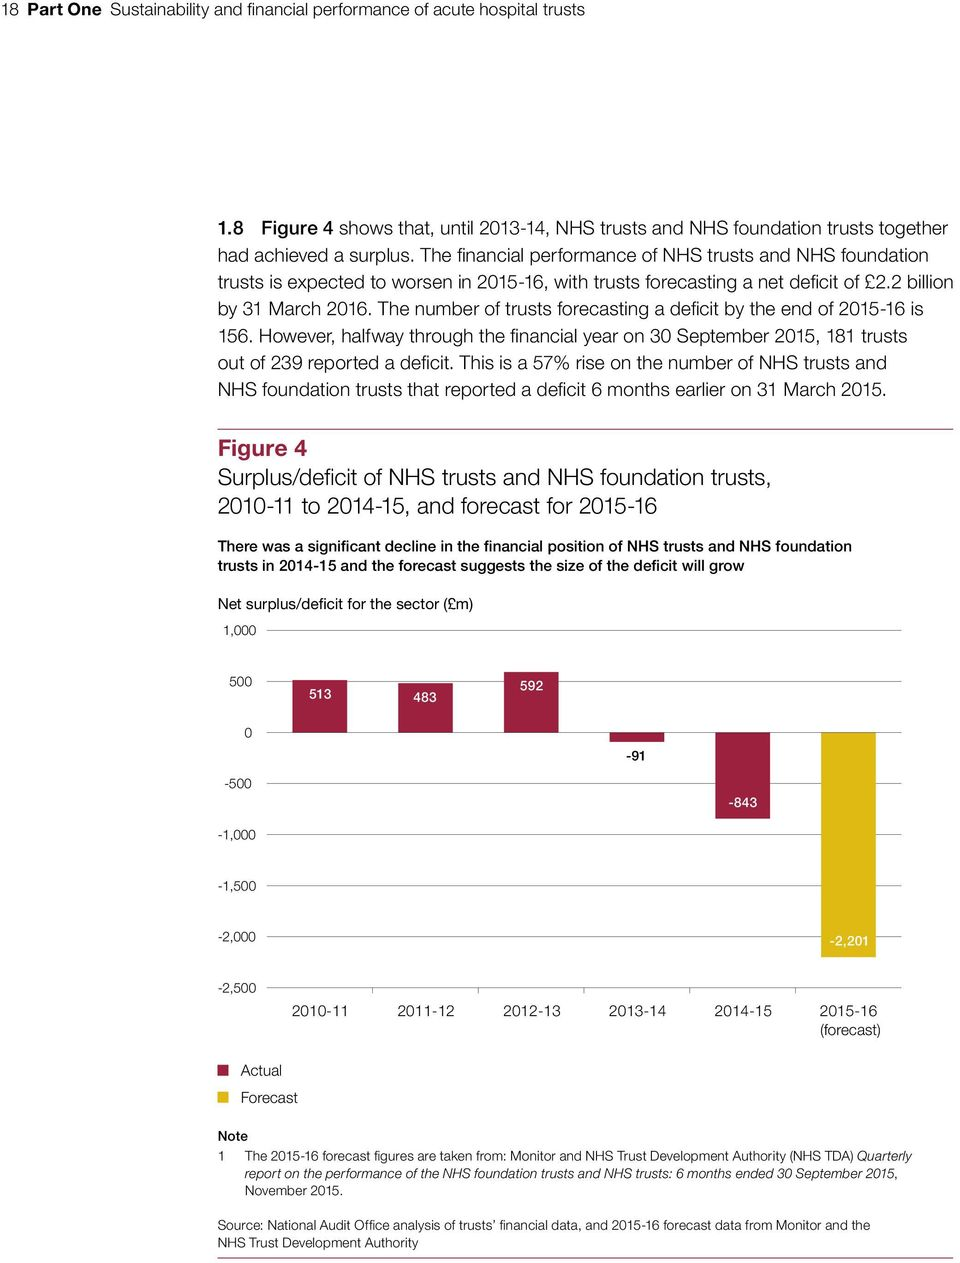 The number of trusts forecasting a deficit by the end of 2015-16 is 156. However, halfway through the financial year on 30 September 2015, 181 trusts out of 239 reported a deficit.